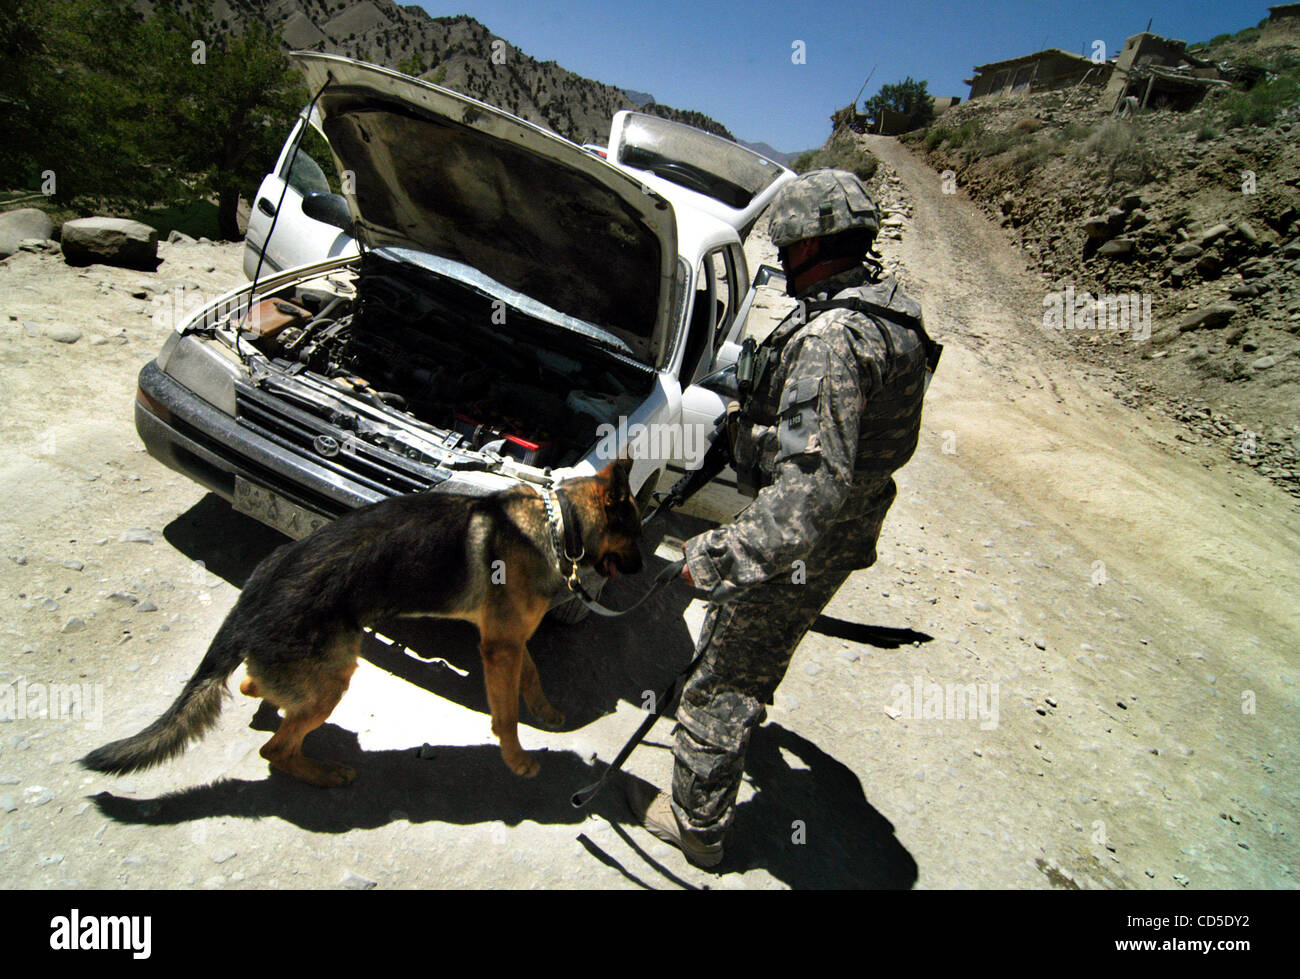 Download Afghanistan Army Adorable Dog - apr-26-2008-paktya-province-afghanistan-a-military-working-dog-is-CD5DY2  Pictures_386073  .jpg